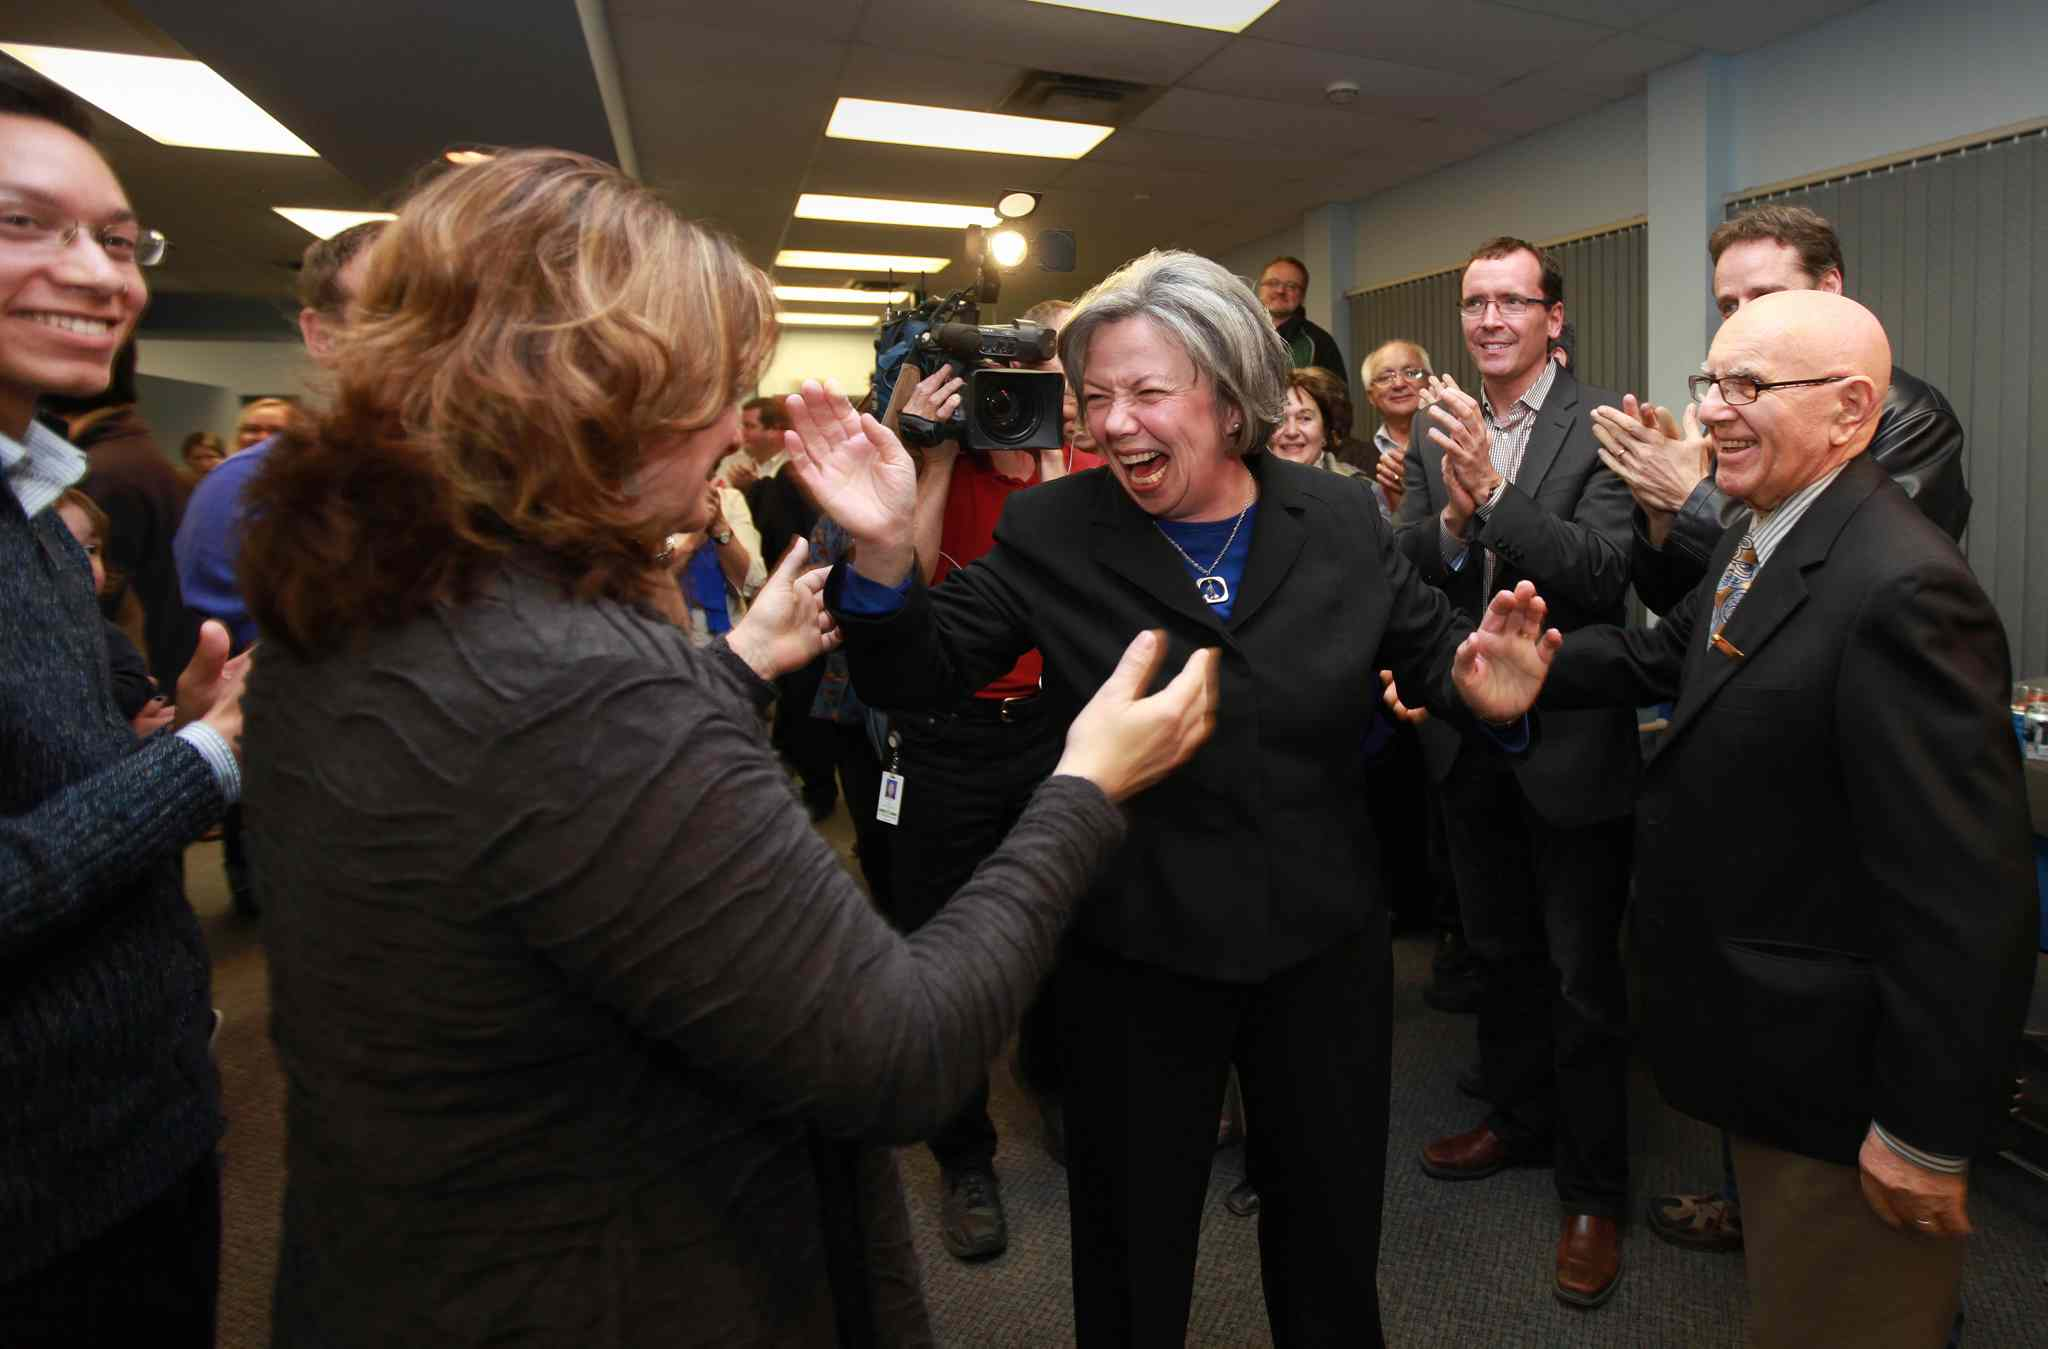 Joyce Bateman reacts to her supporters at her Corydon Ave headquarters on election night.